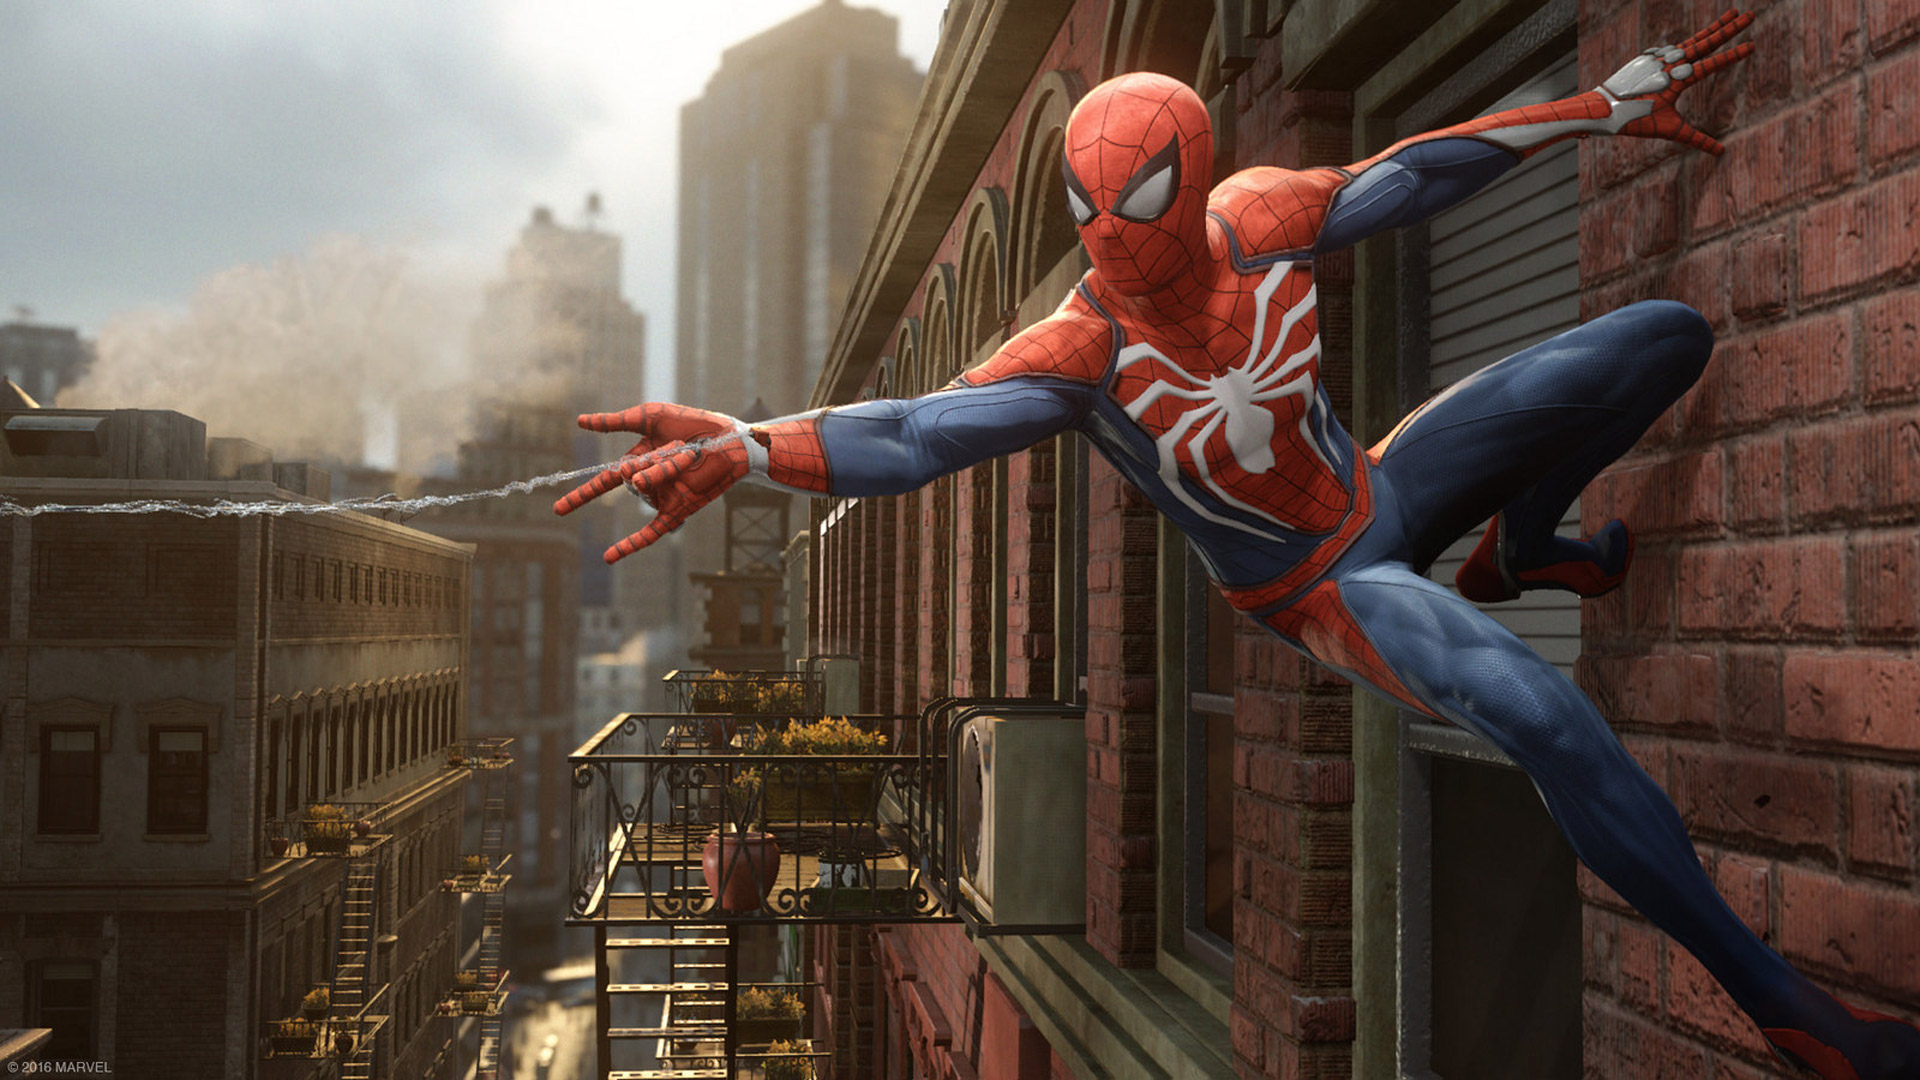 spiderman ps4 2016 game, hd games, 4k wallpapers, images